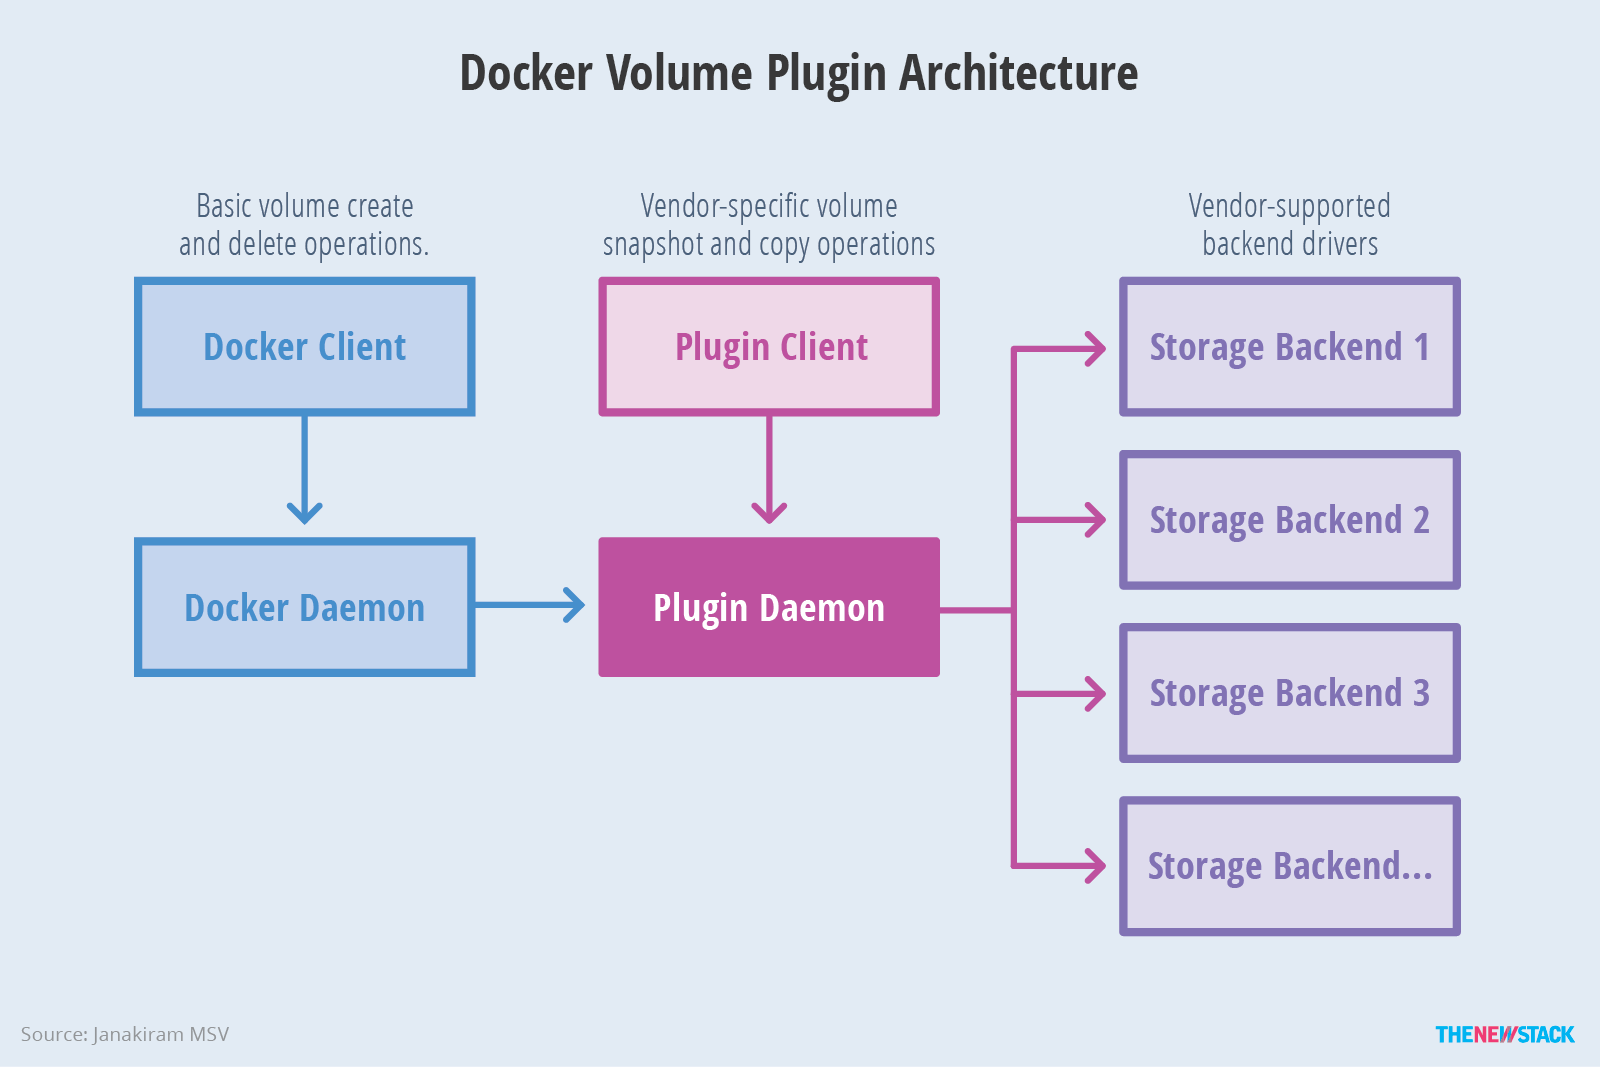 Enterprise Container Strategy Bernard Lin Medium Netapp Wiring Diagram Engine Persistent Disks Storage And Vsphere In Addition Projects Like Rancher Convoy Can Provide Access To Multiple Backends At The Same Time